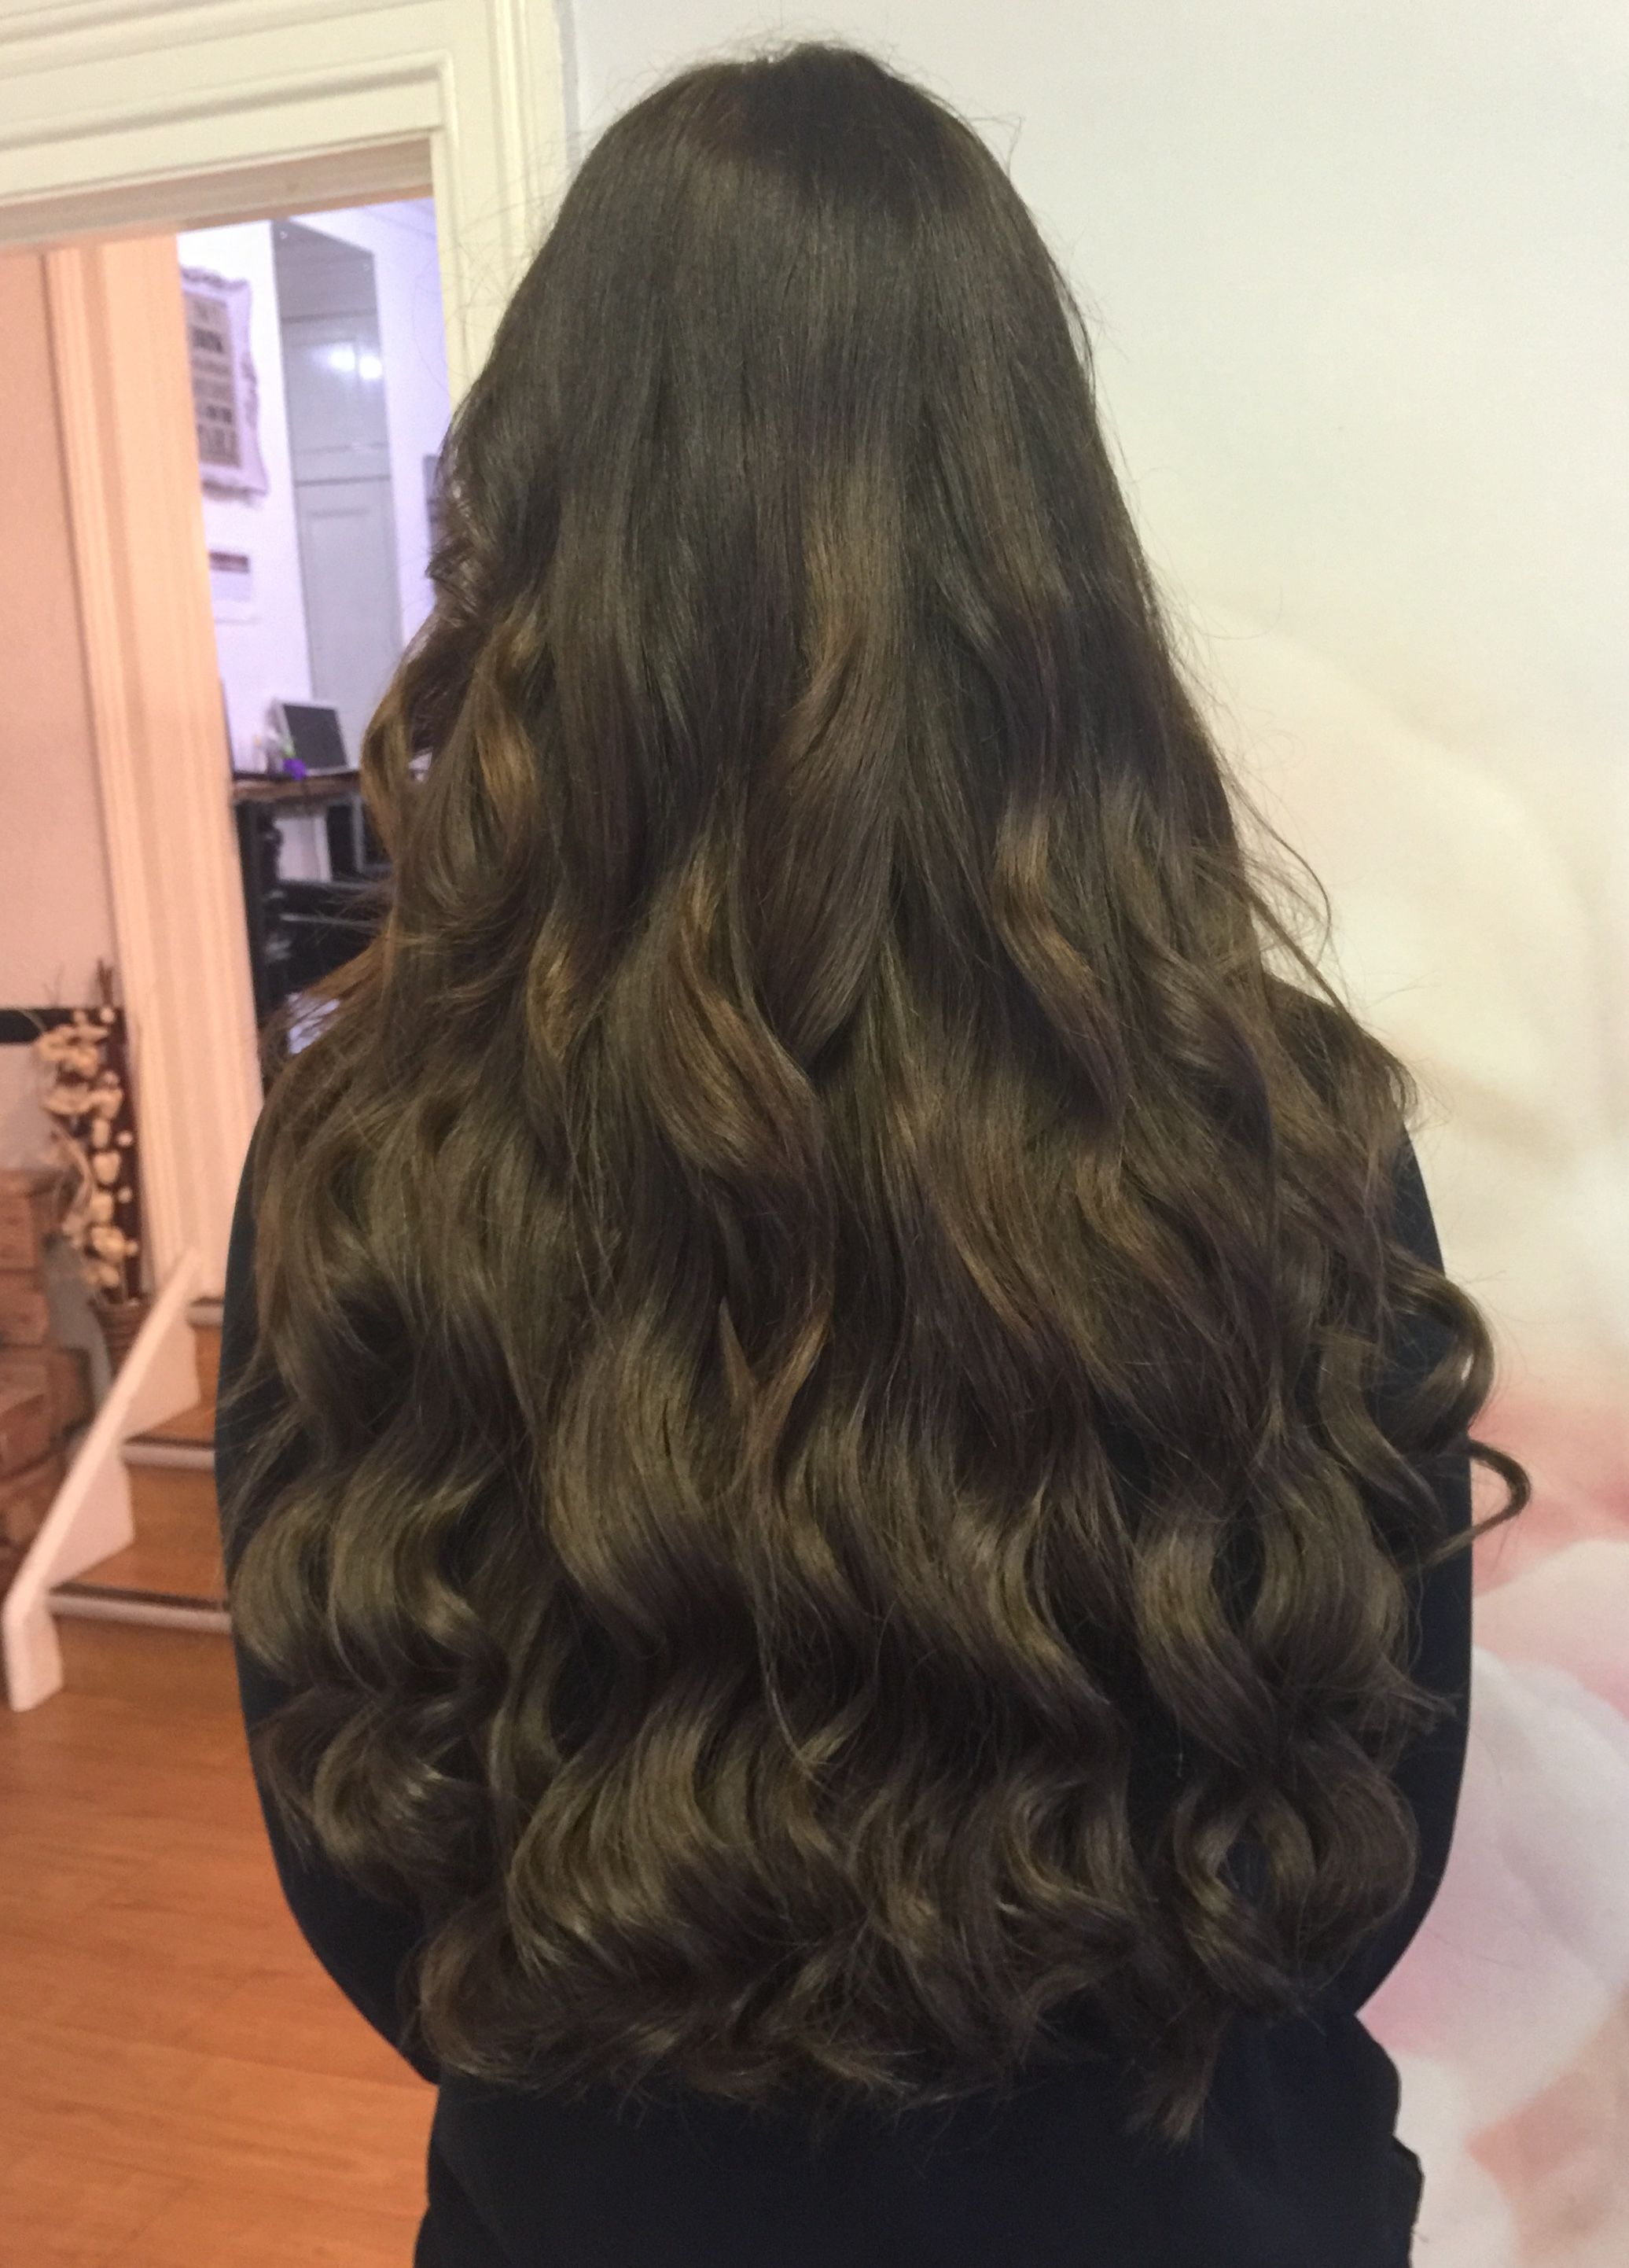 Want To Learn How To Fit Hair Extensions Like This Enquire About